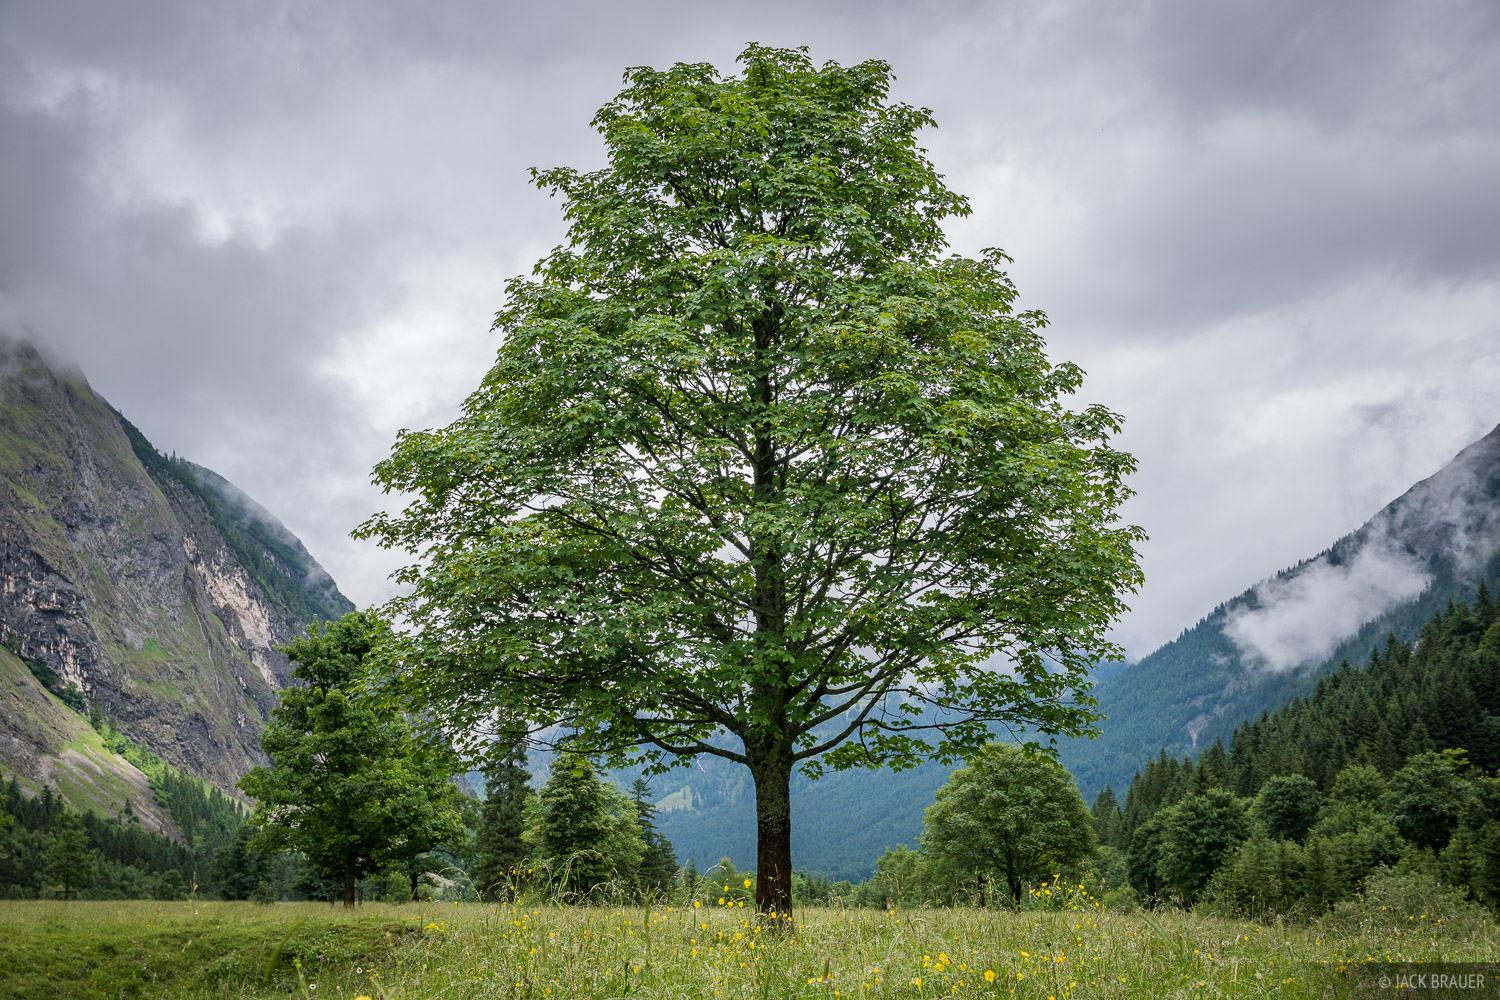 Austria, Engalm, Karwendel, Alps, Eng Alm, Engtal, maple tree, tree, photo